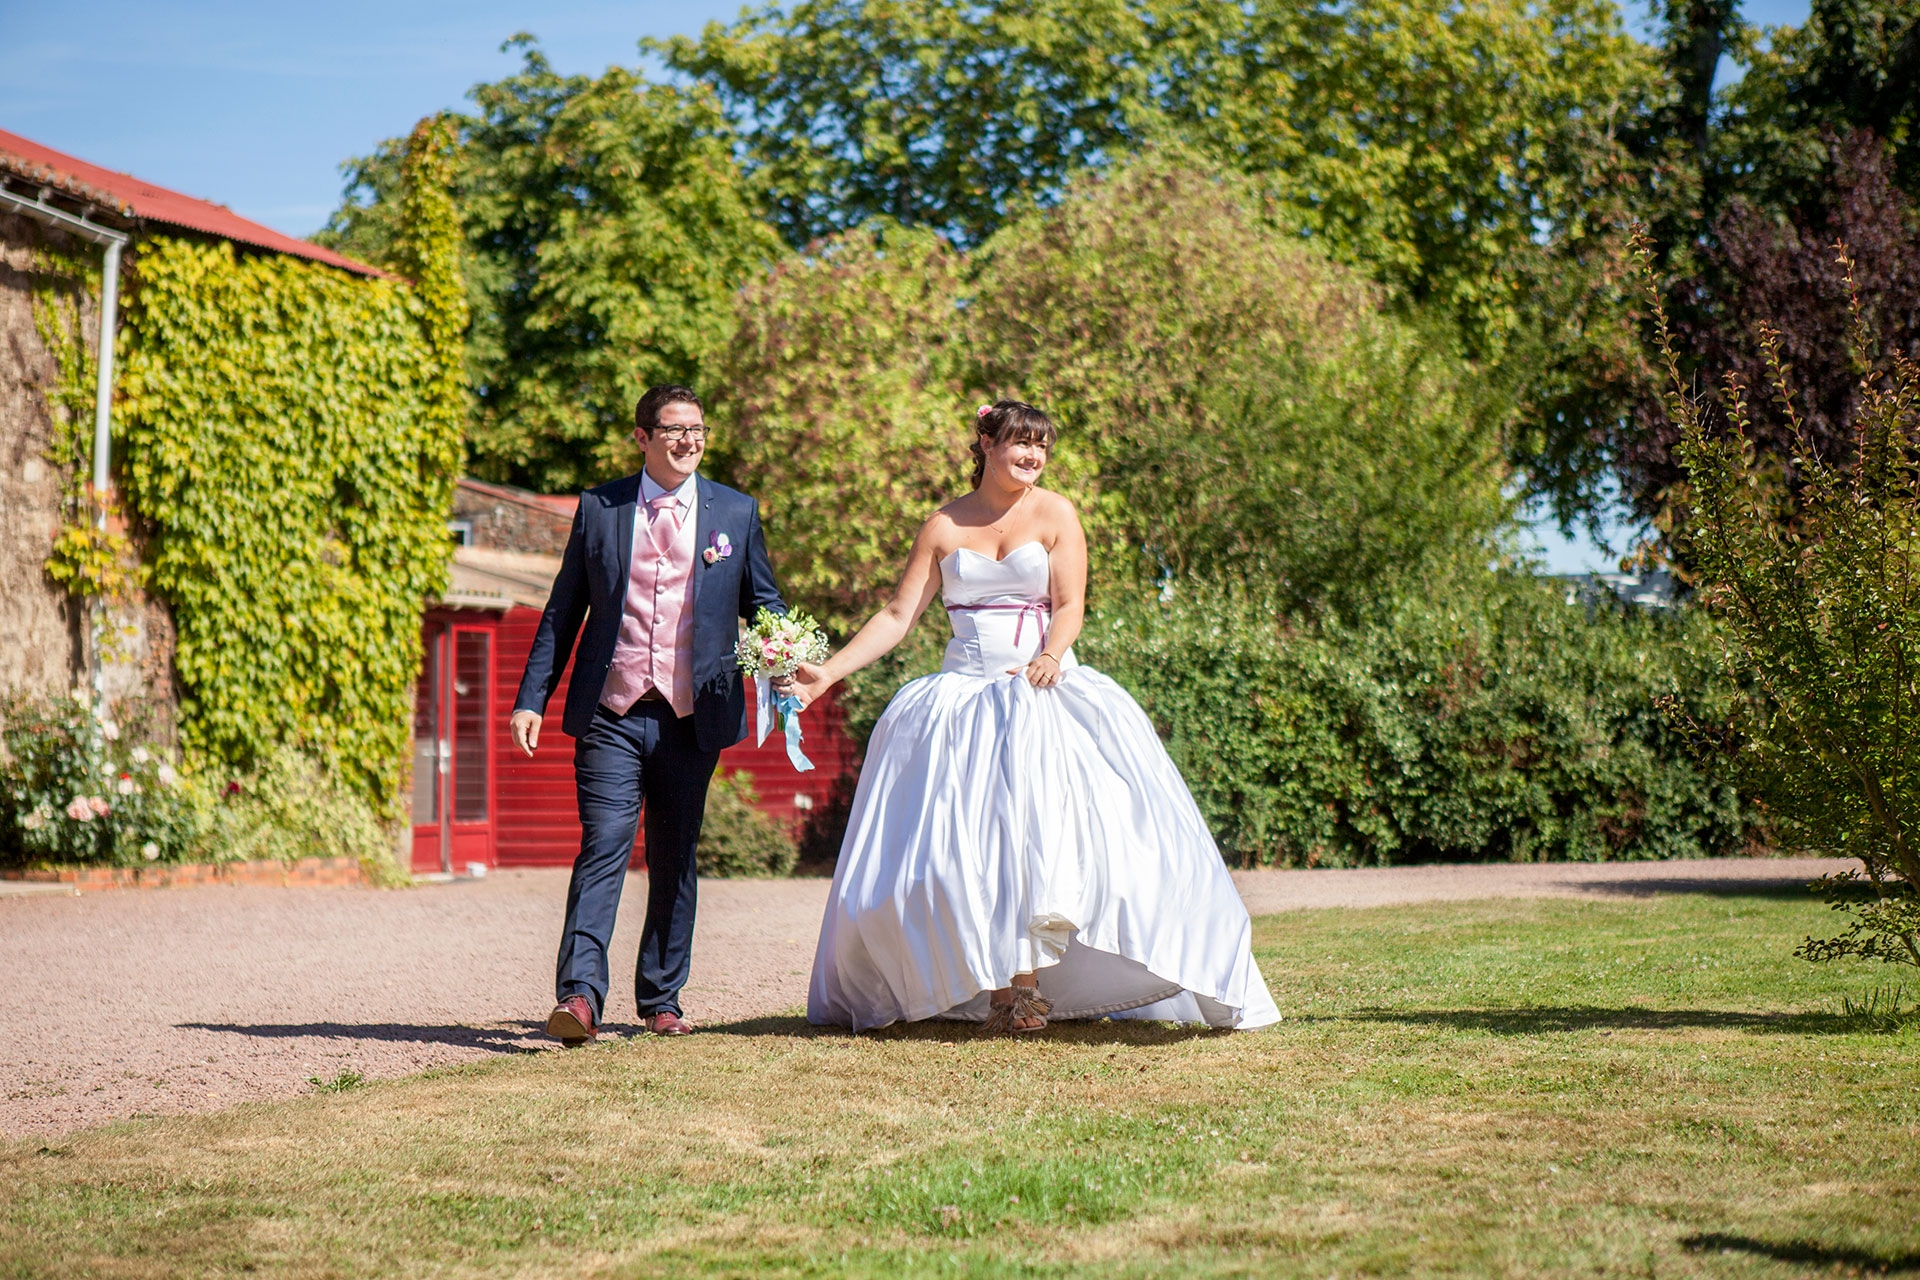 particuliers-evenements-mariages-oui-france&philippe-39